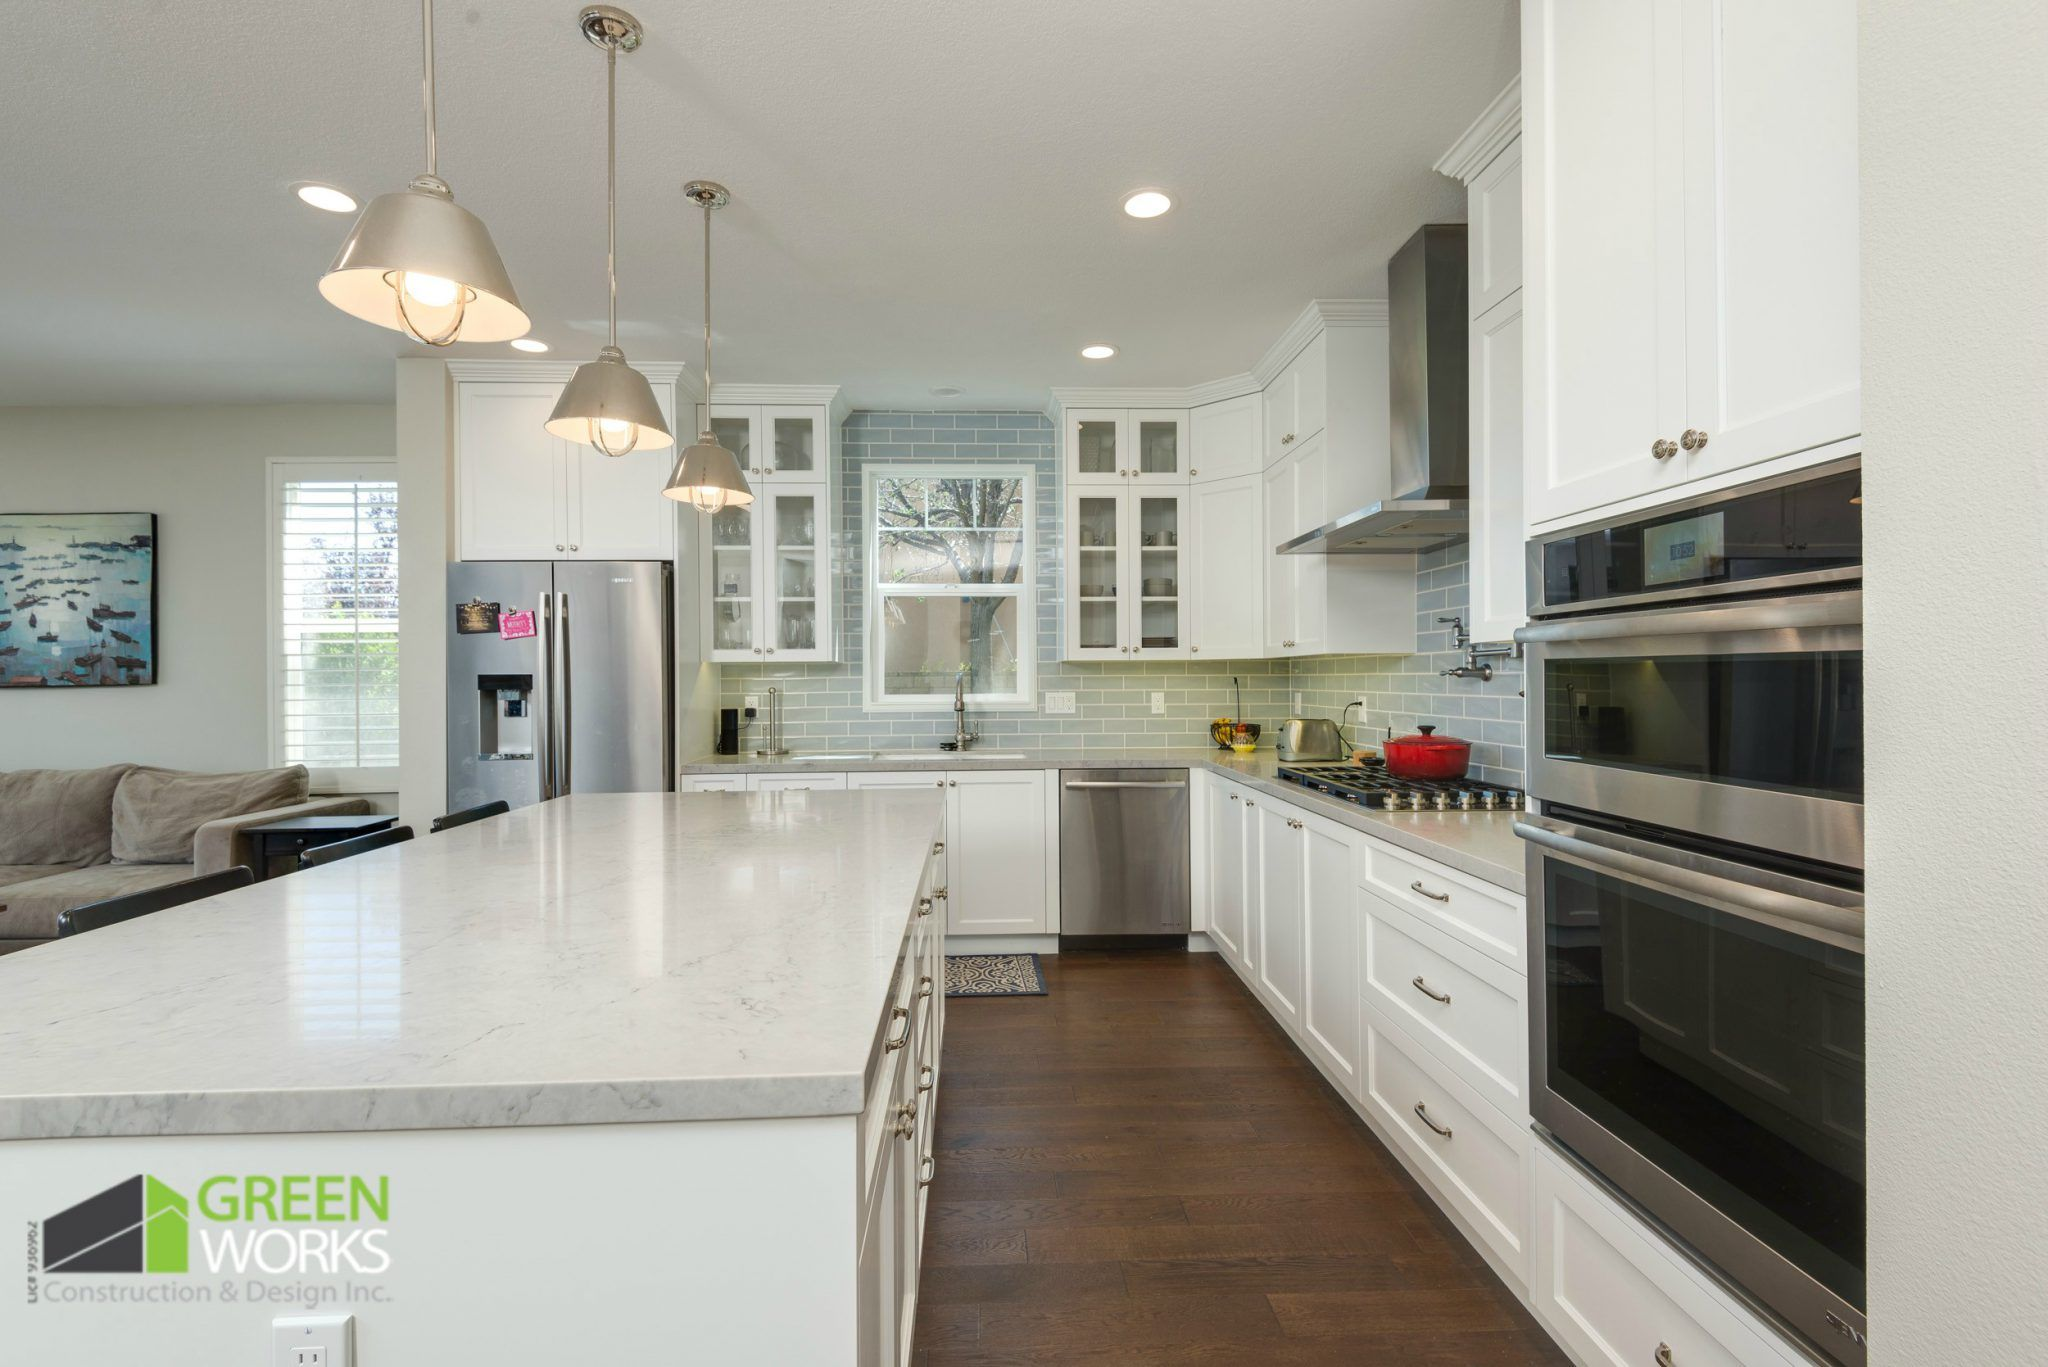 Woodland Cabinetry On Hgtv In 2020 Cabinetry Kitchen Range Hood Beautiful Kitchens